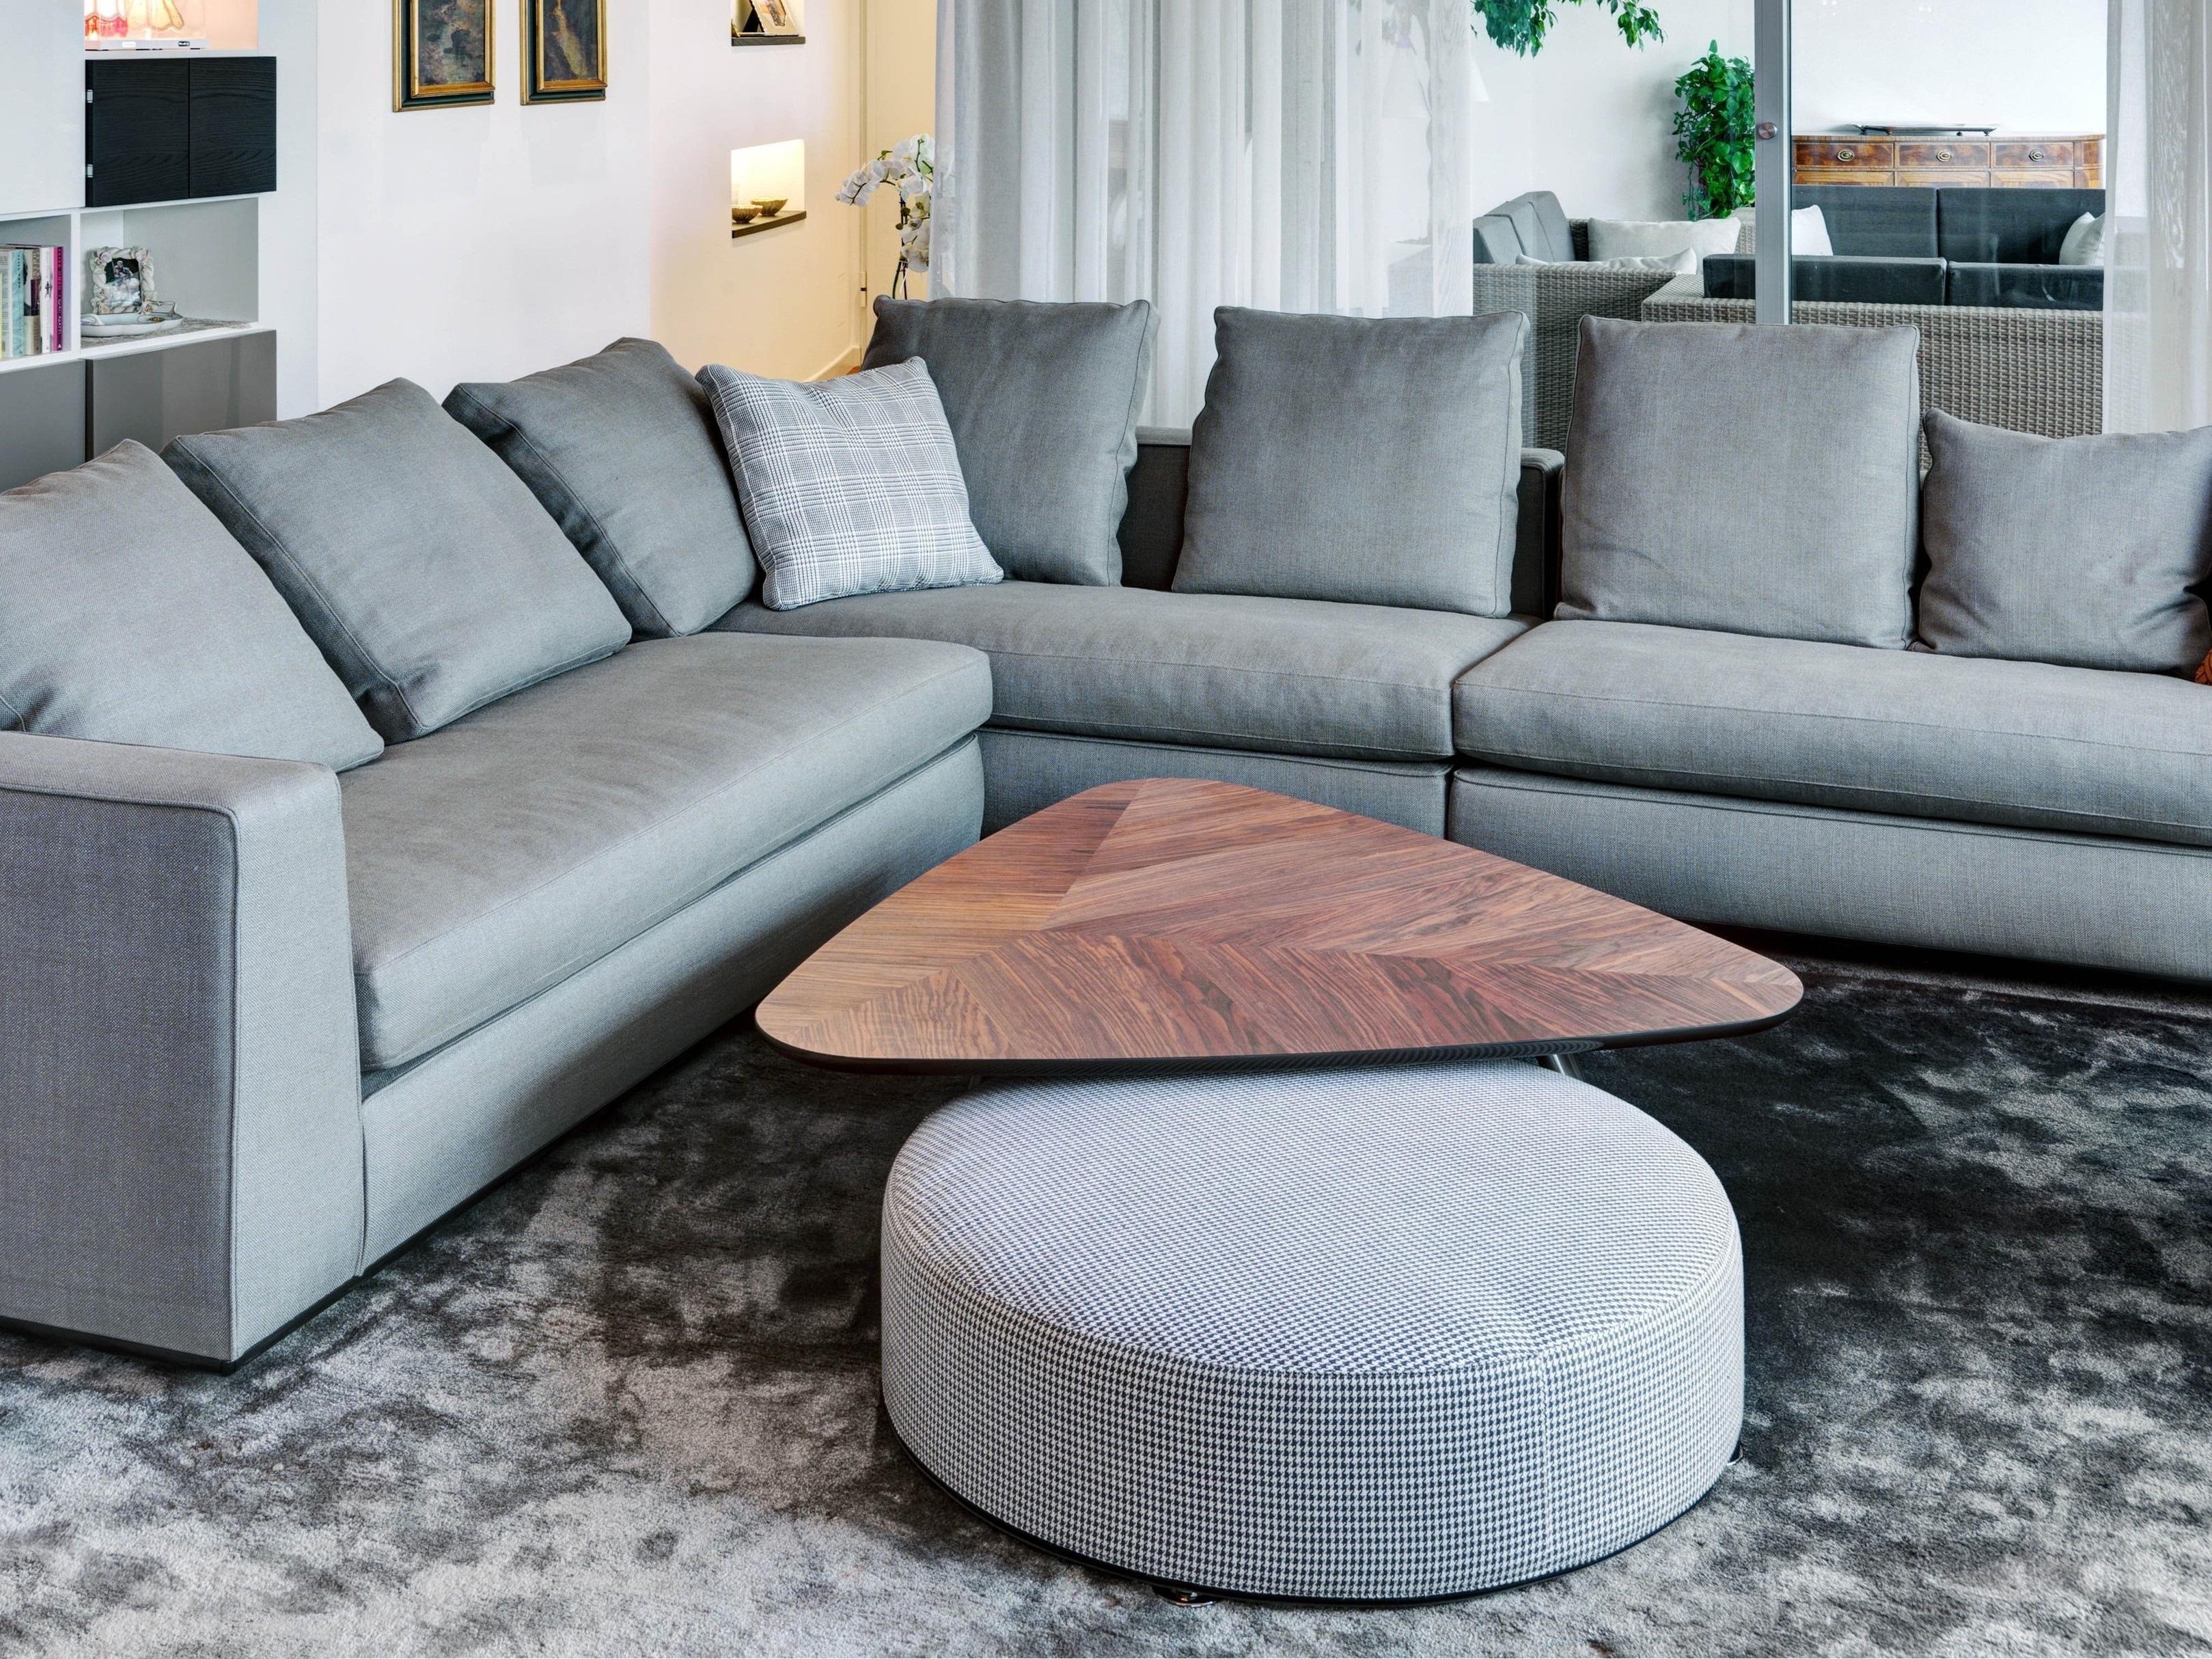 Idea For Living Room Coffee Table